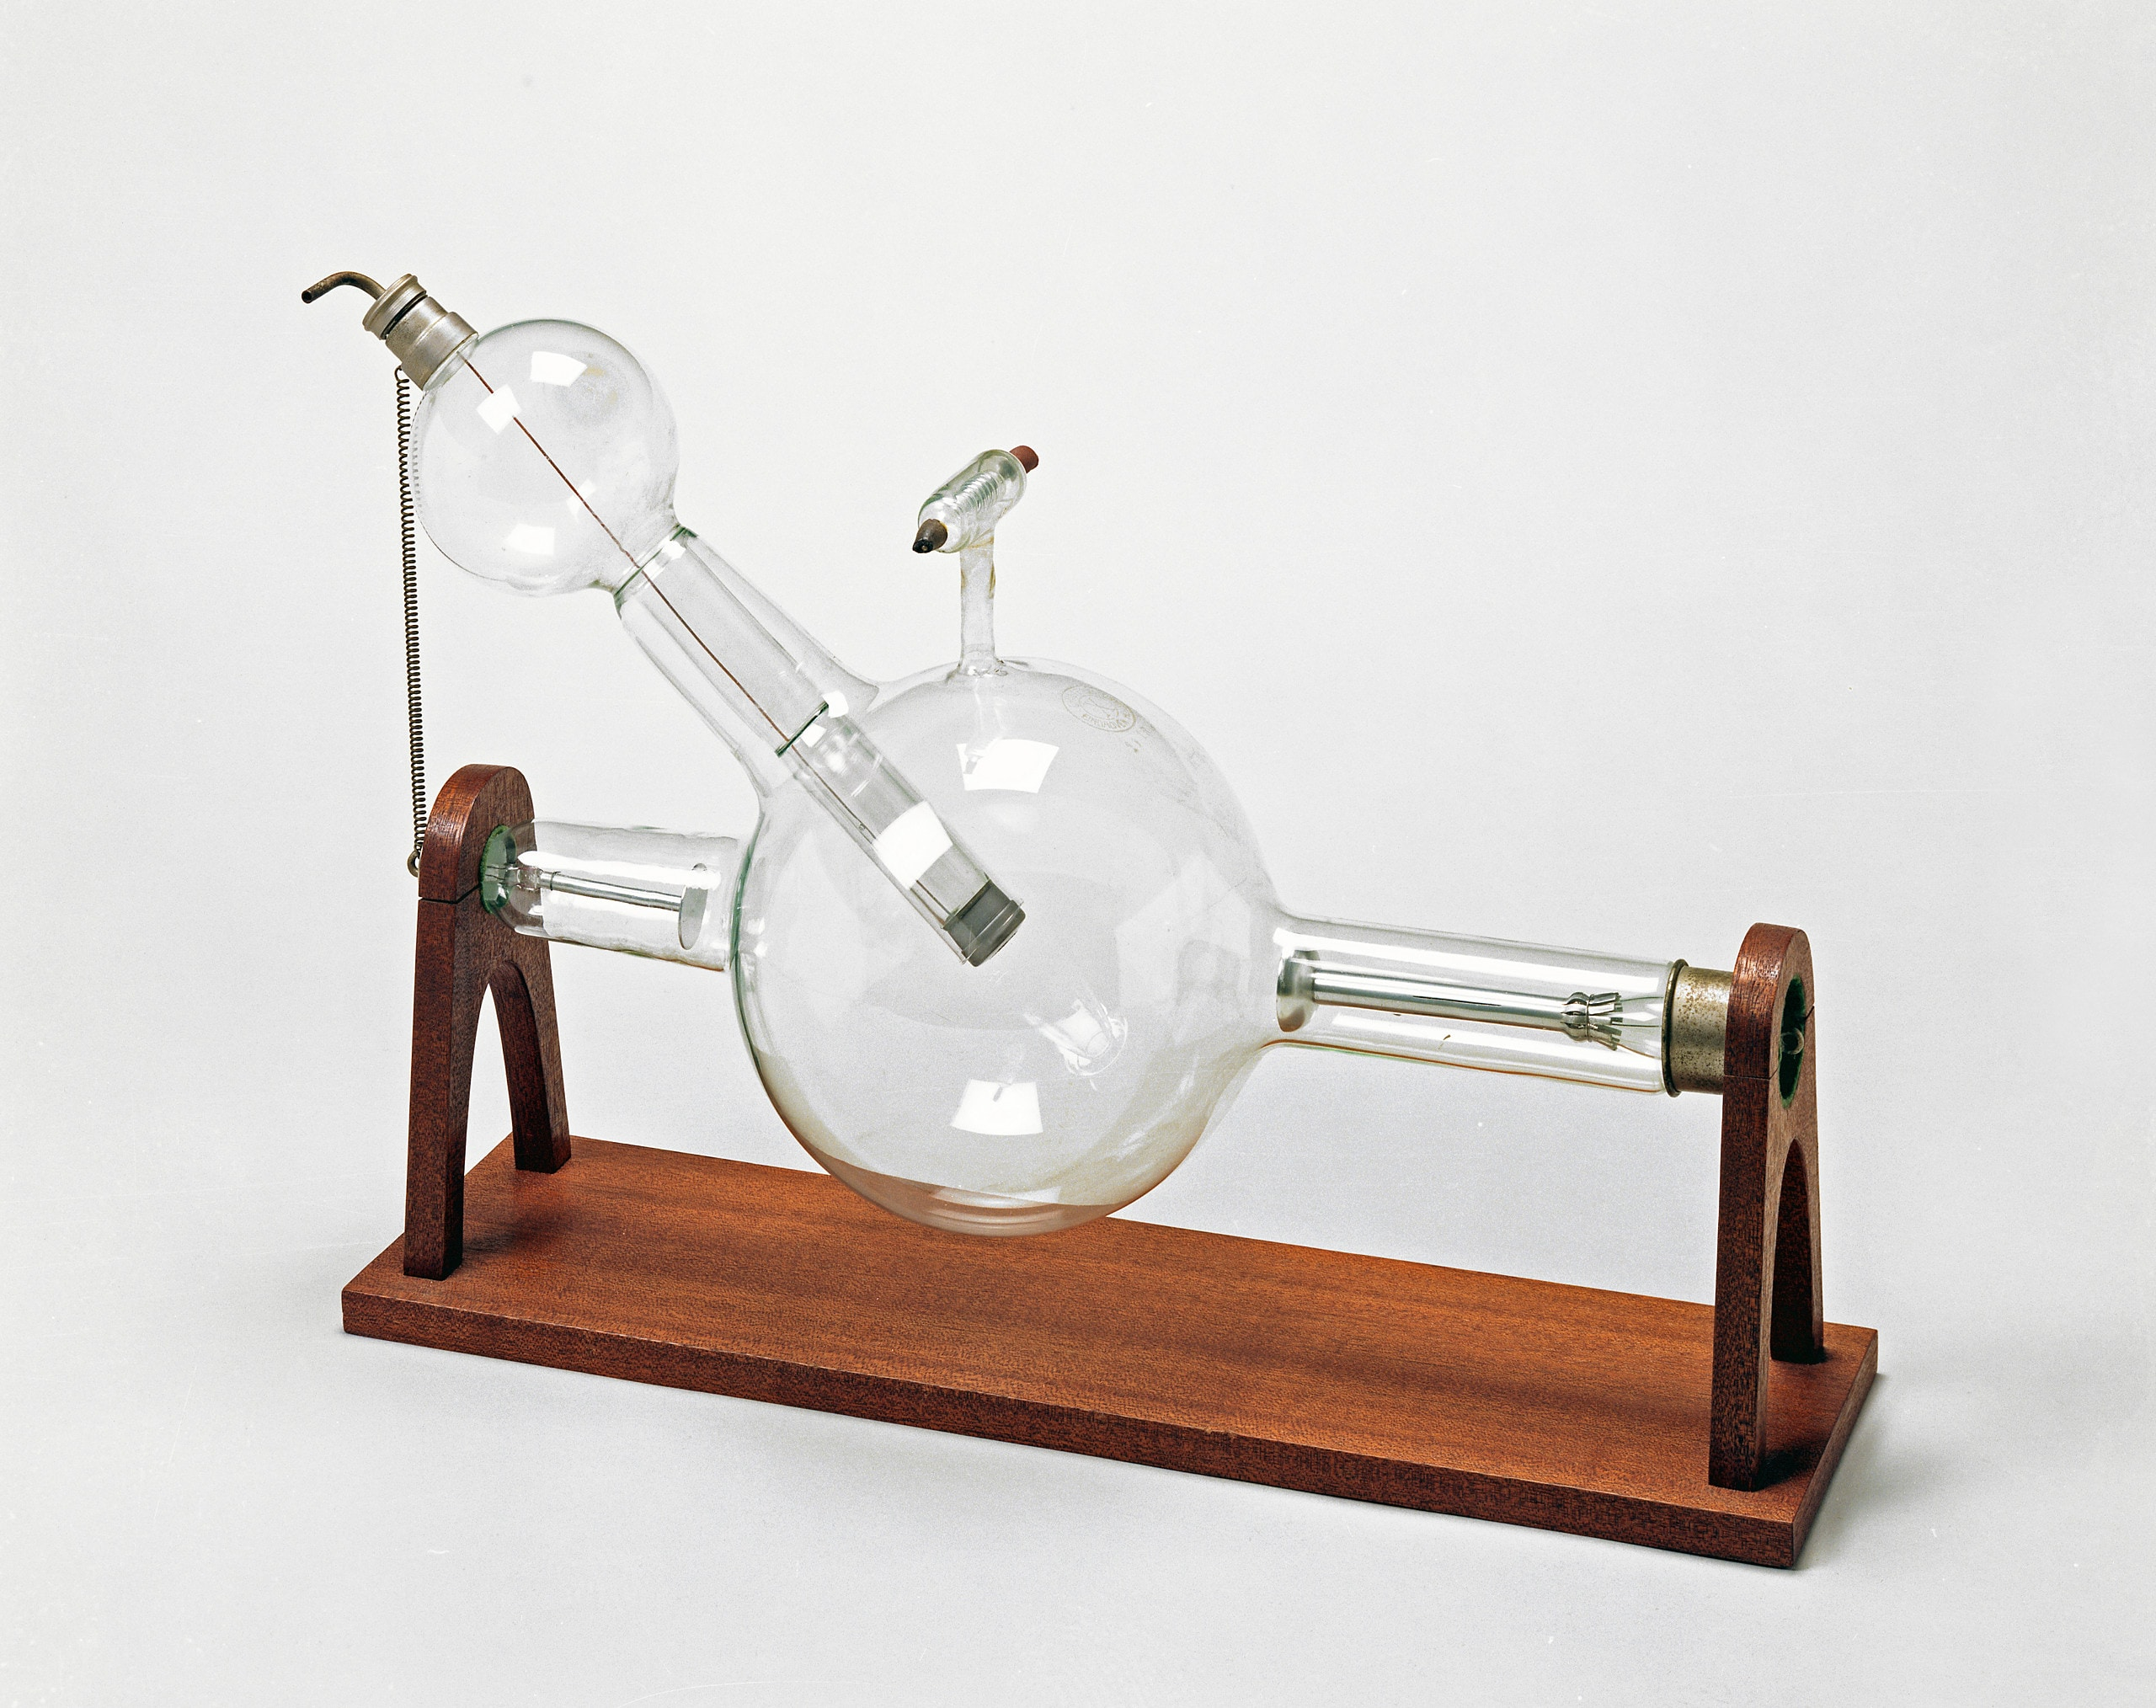 1918 – Philips first X-ray tube